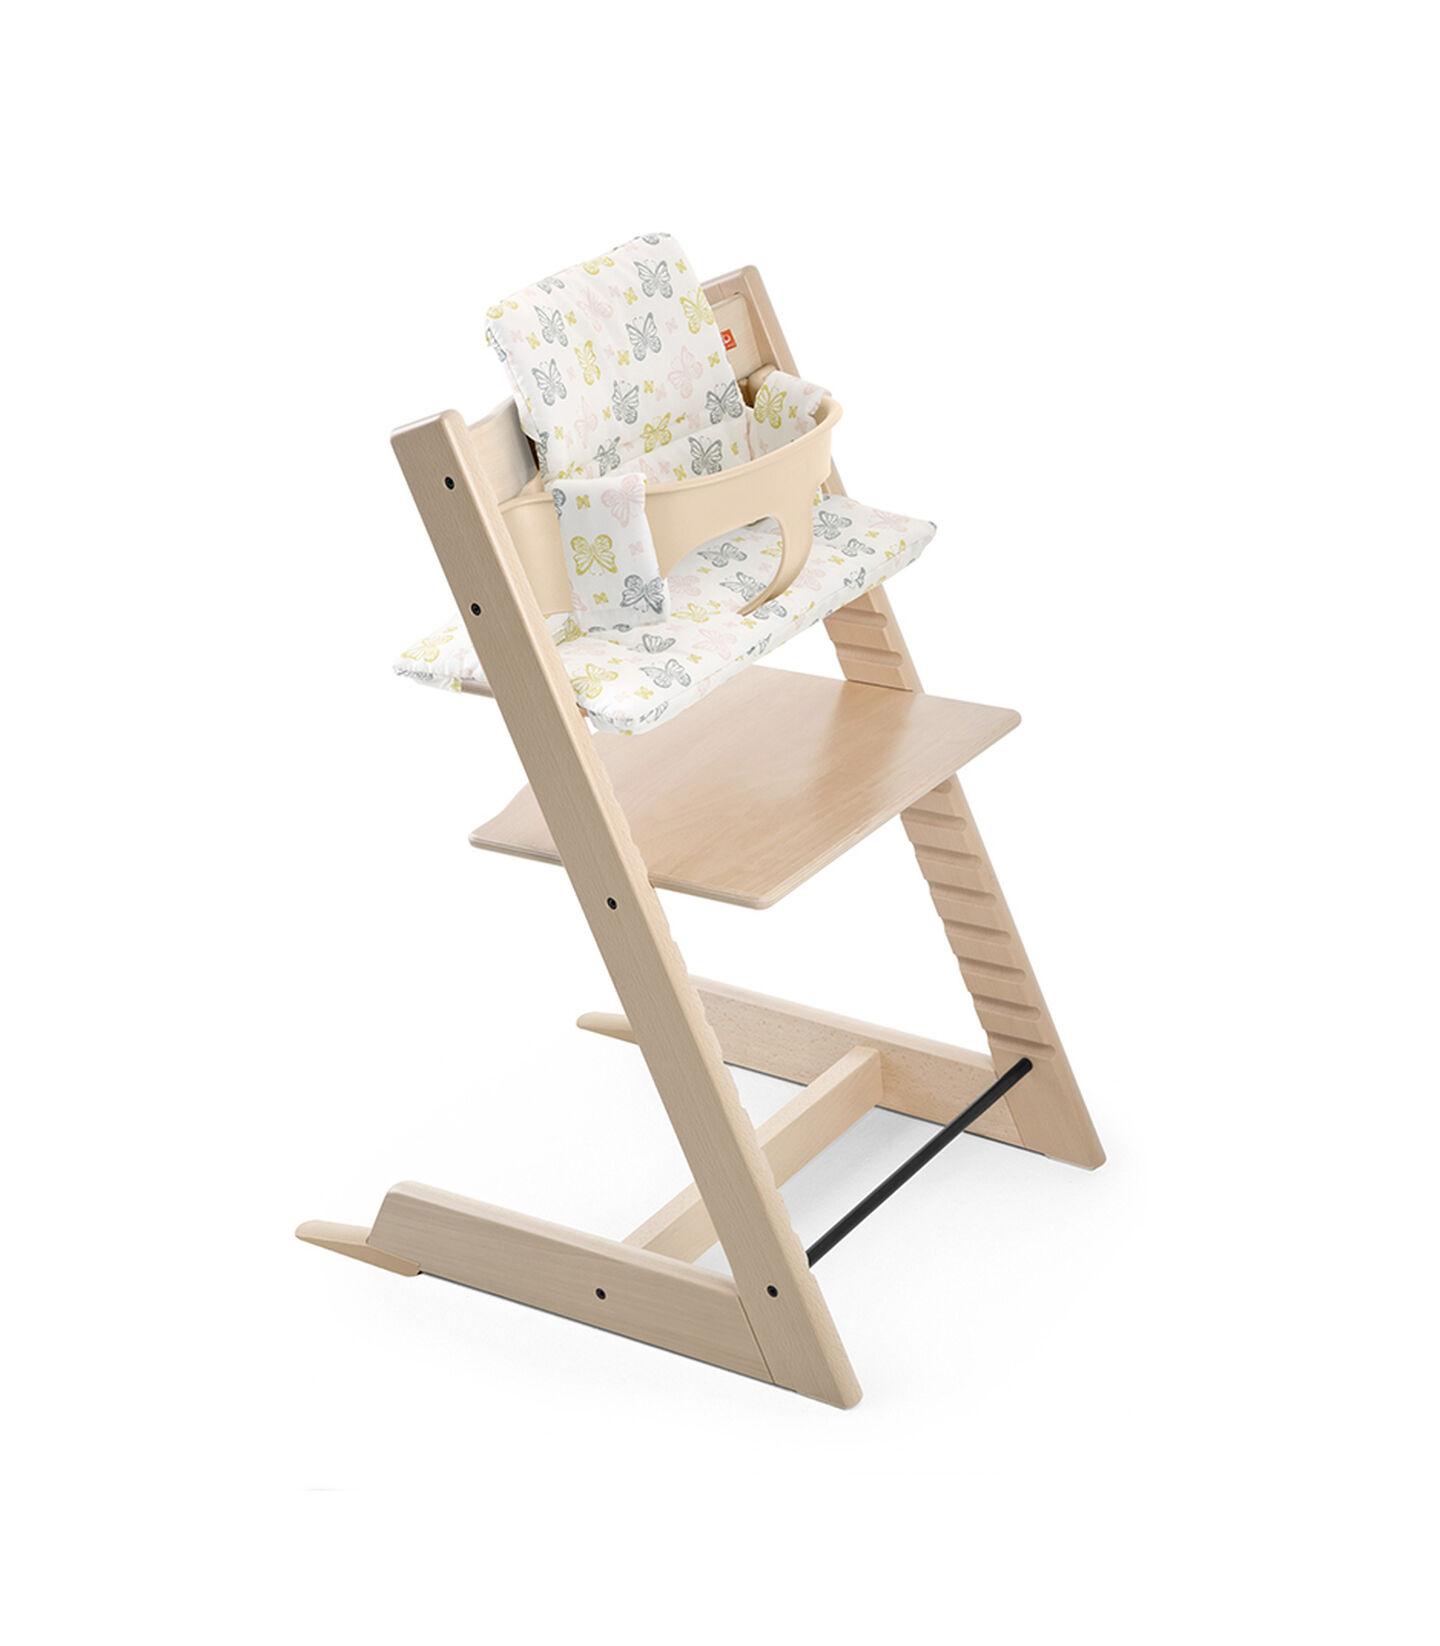 Chaise haute stokke occasion 31303 chaise id es for Chaise haute stokke occasion